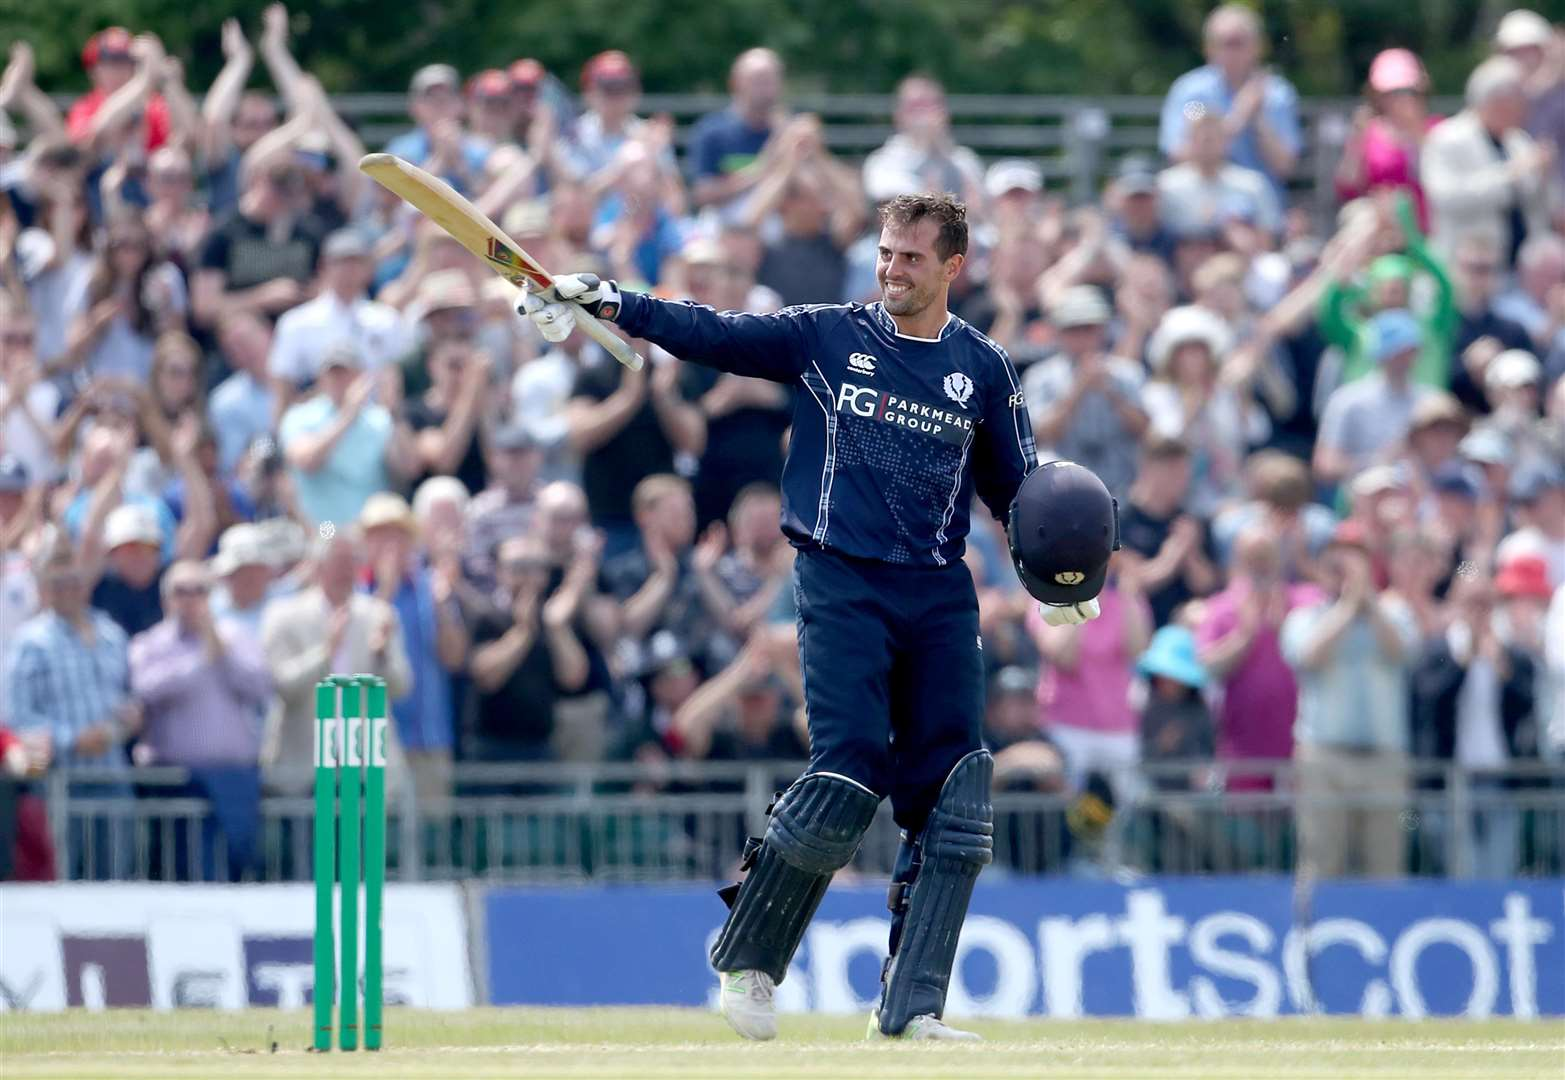 MacLeod relishes century against England